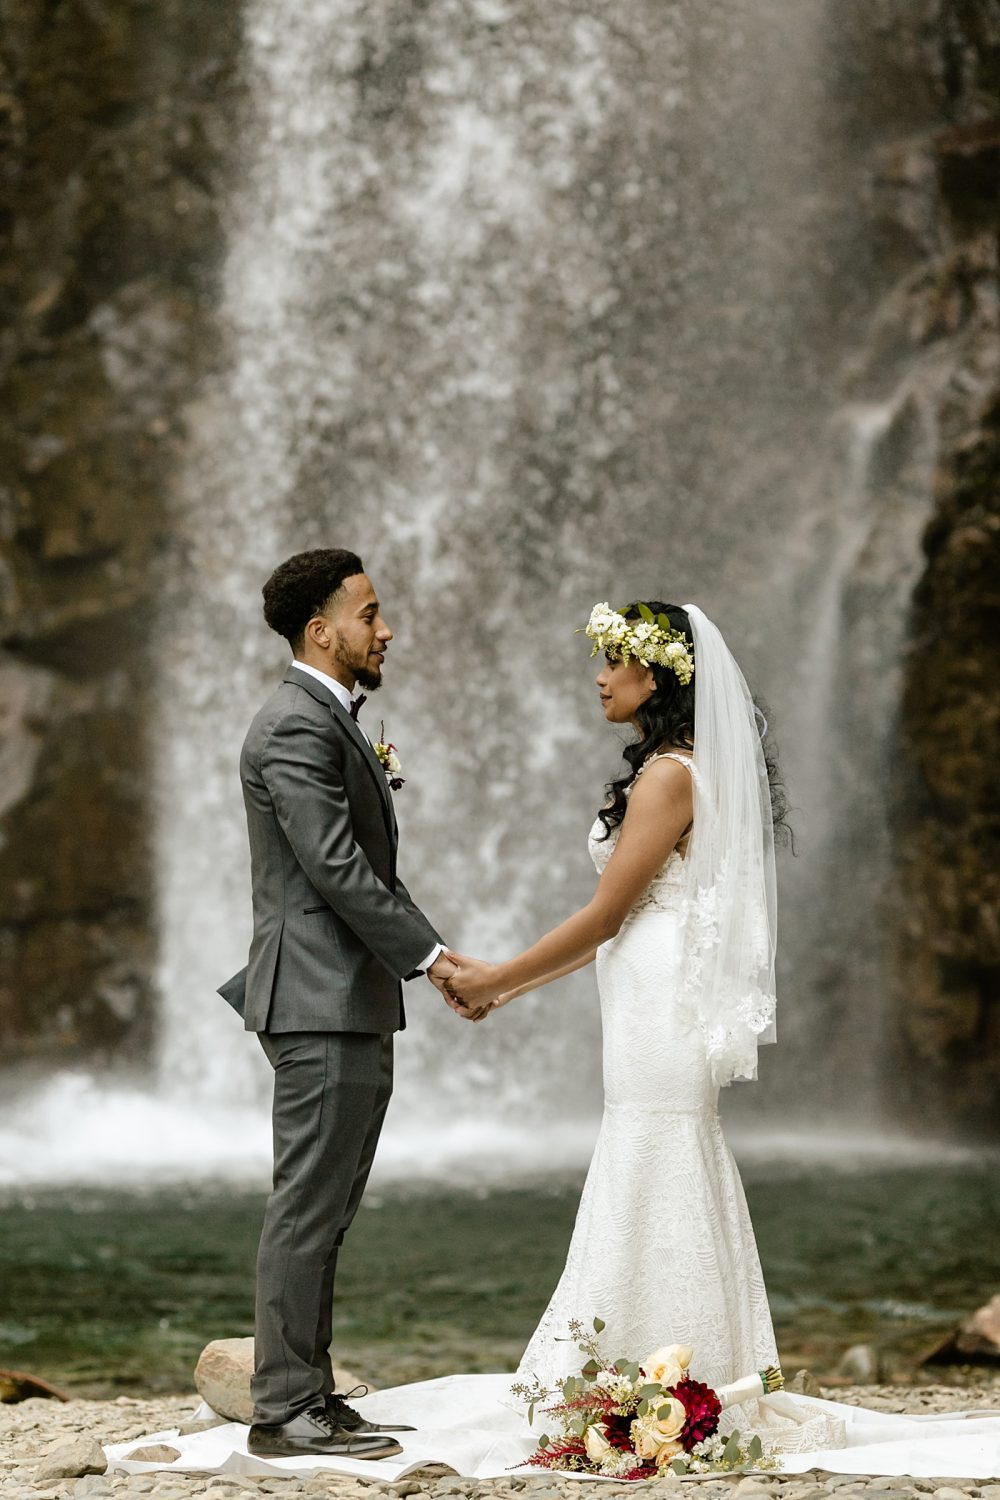 Waterfall elopement bride and groom secluded locations